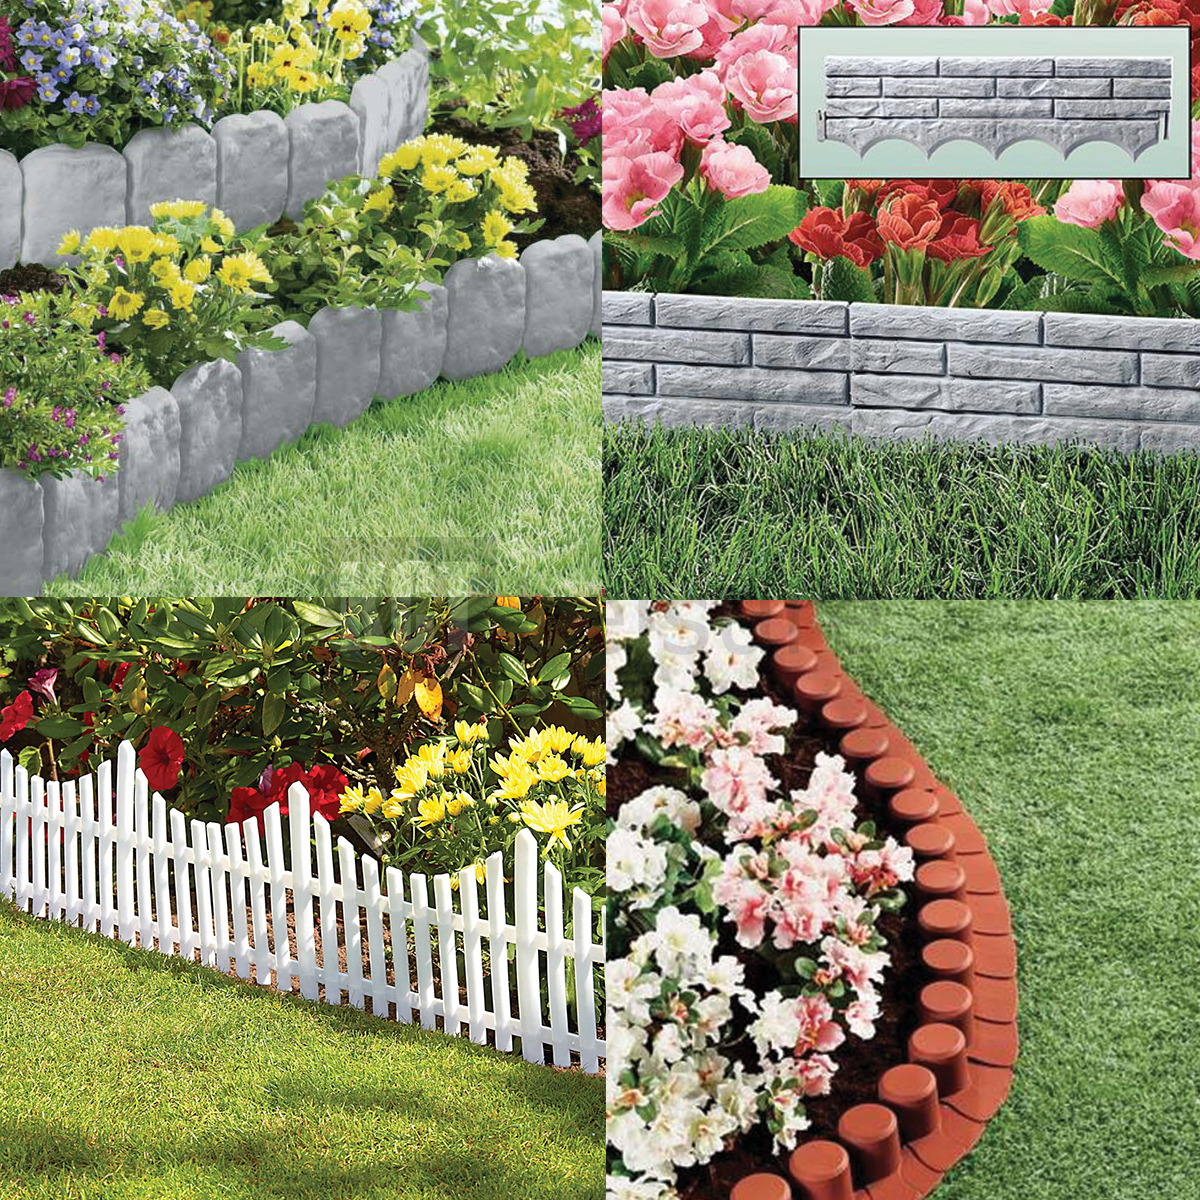 Garden Border Lawn Edging Flexible Plastic Flower Bed